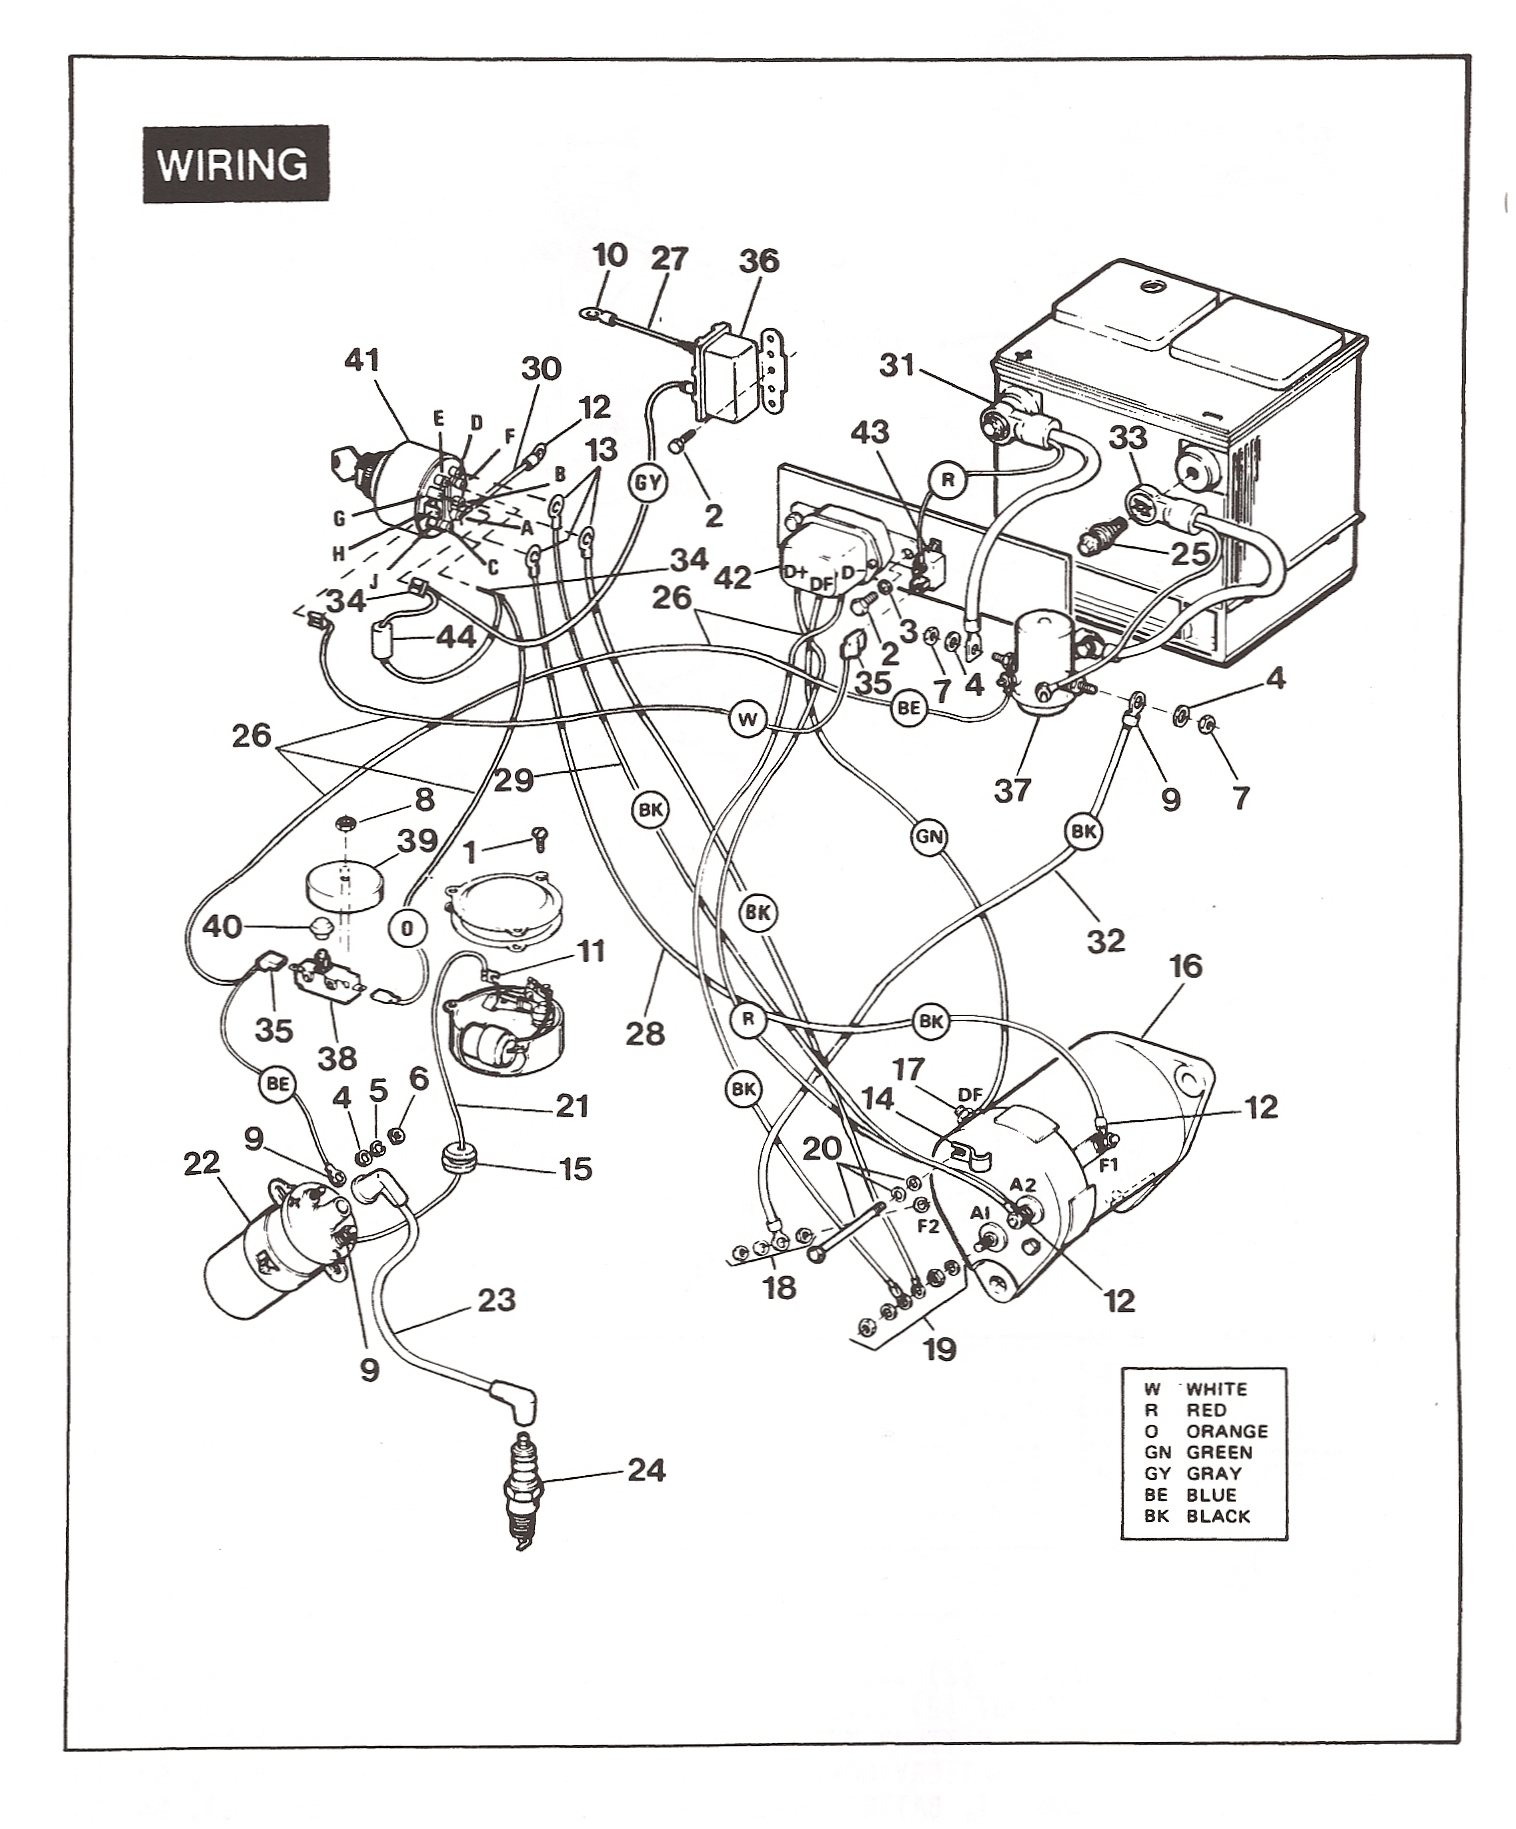 82 harley ignition switch wiring diagram